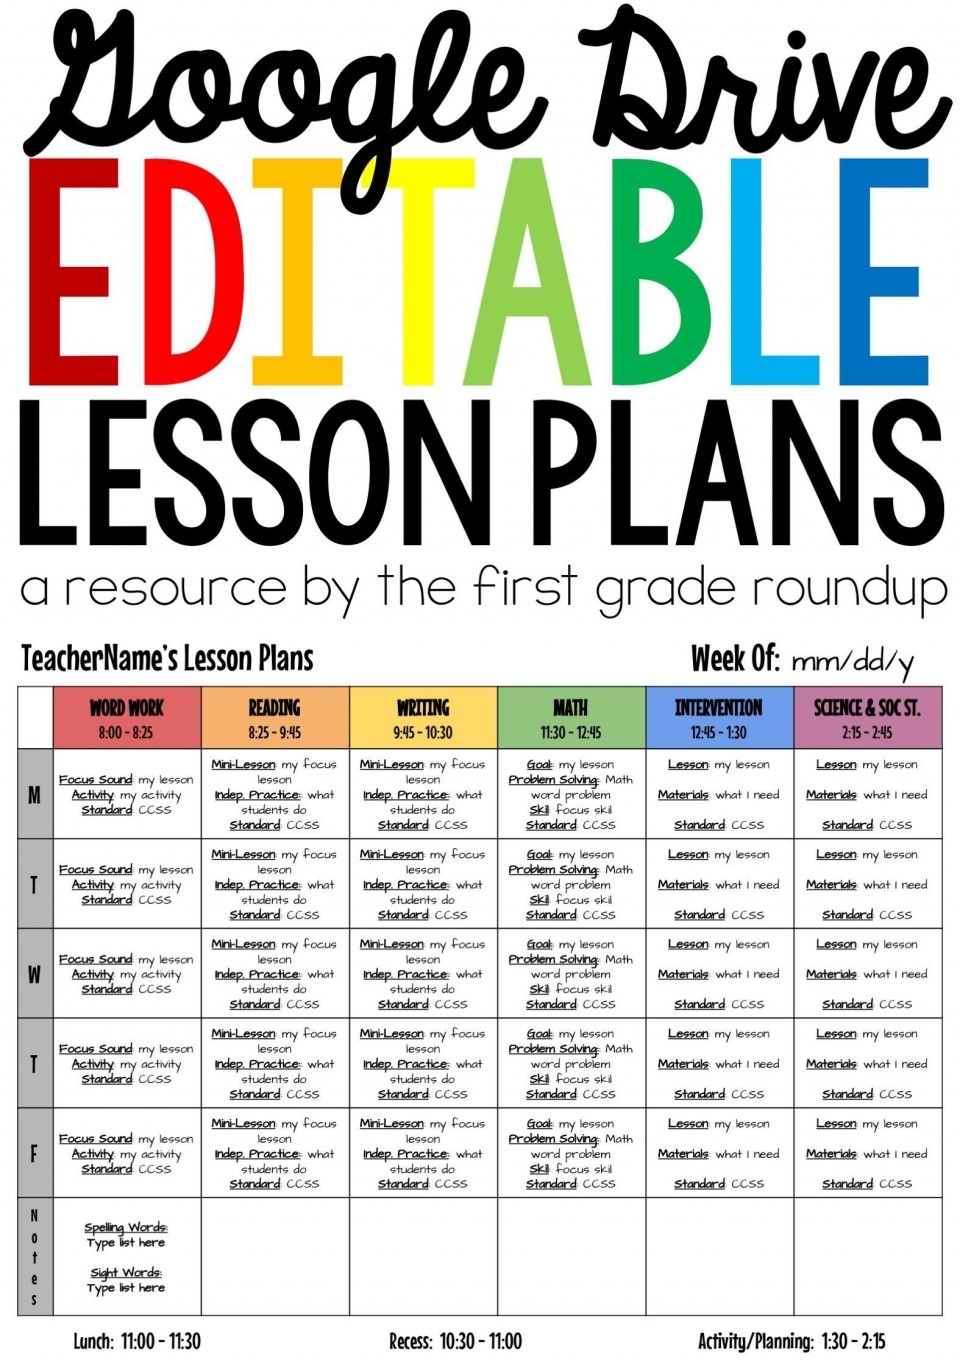 003 Incredible Weekly Lesson Plan Template Google Doc Sample  Ubd Siop960